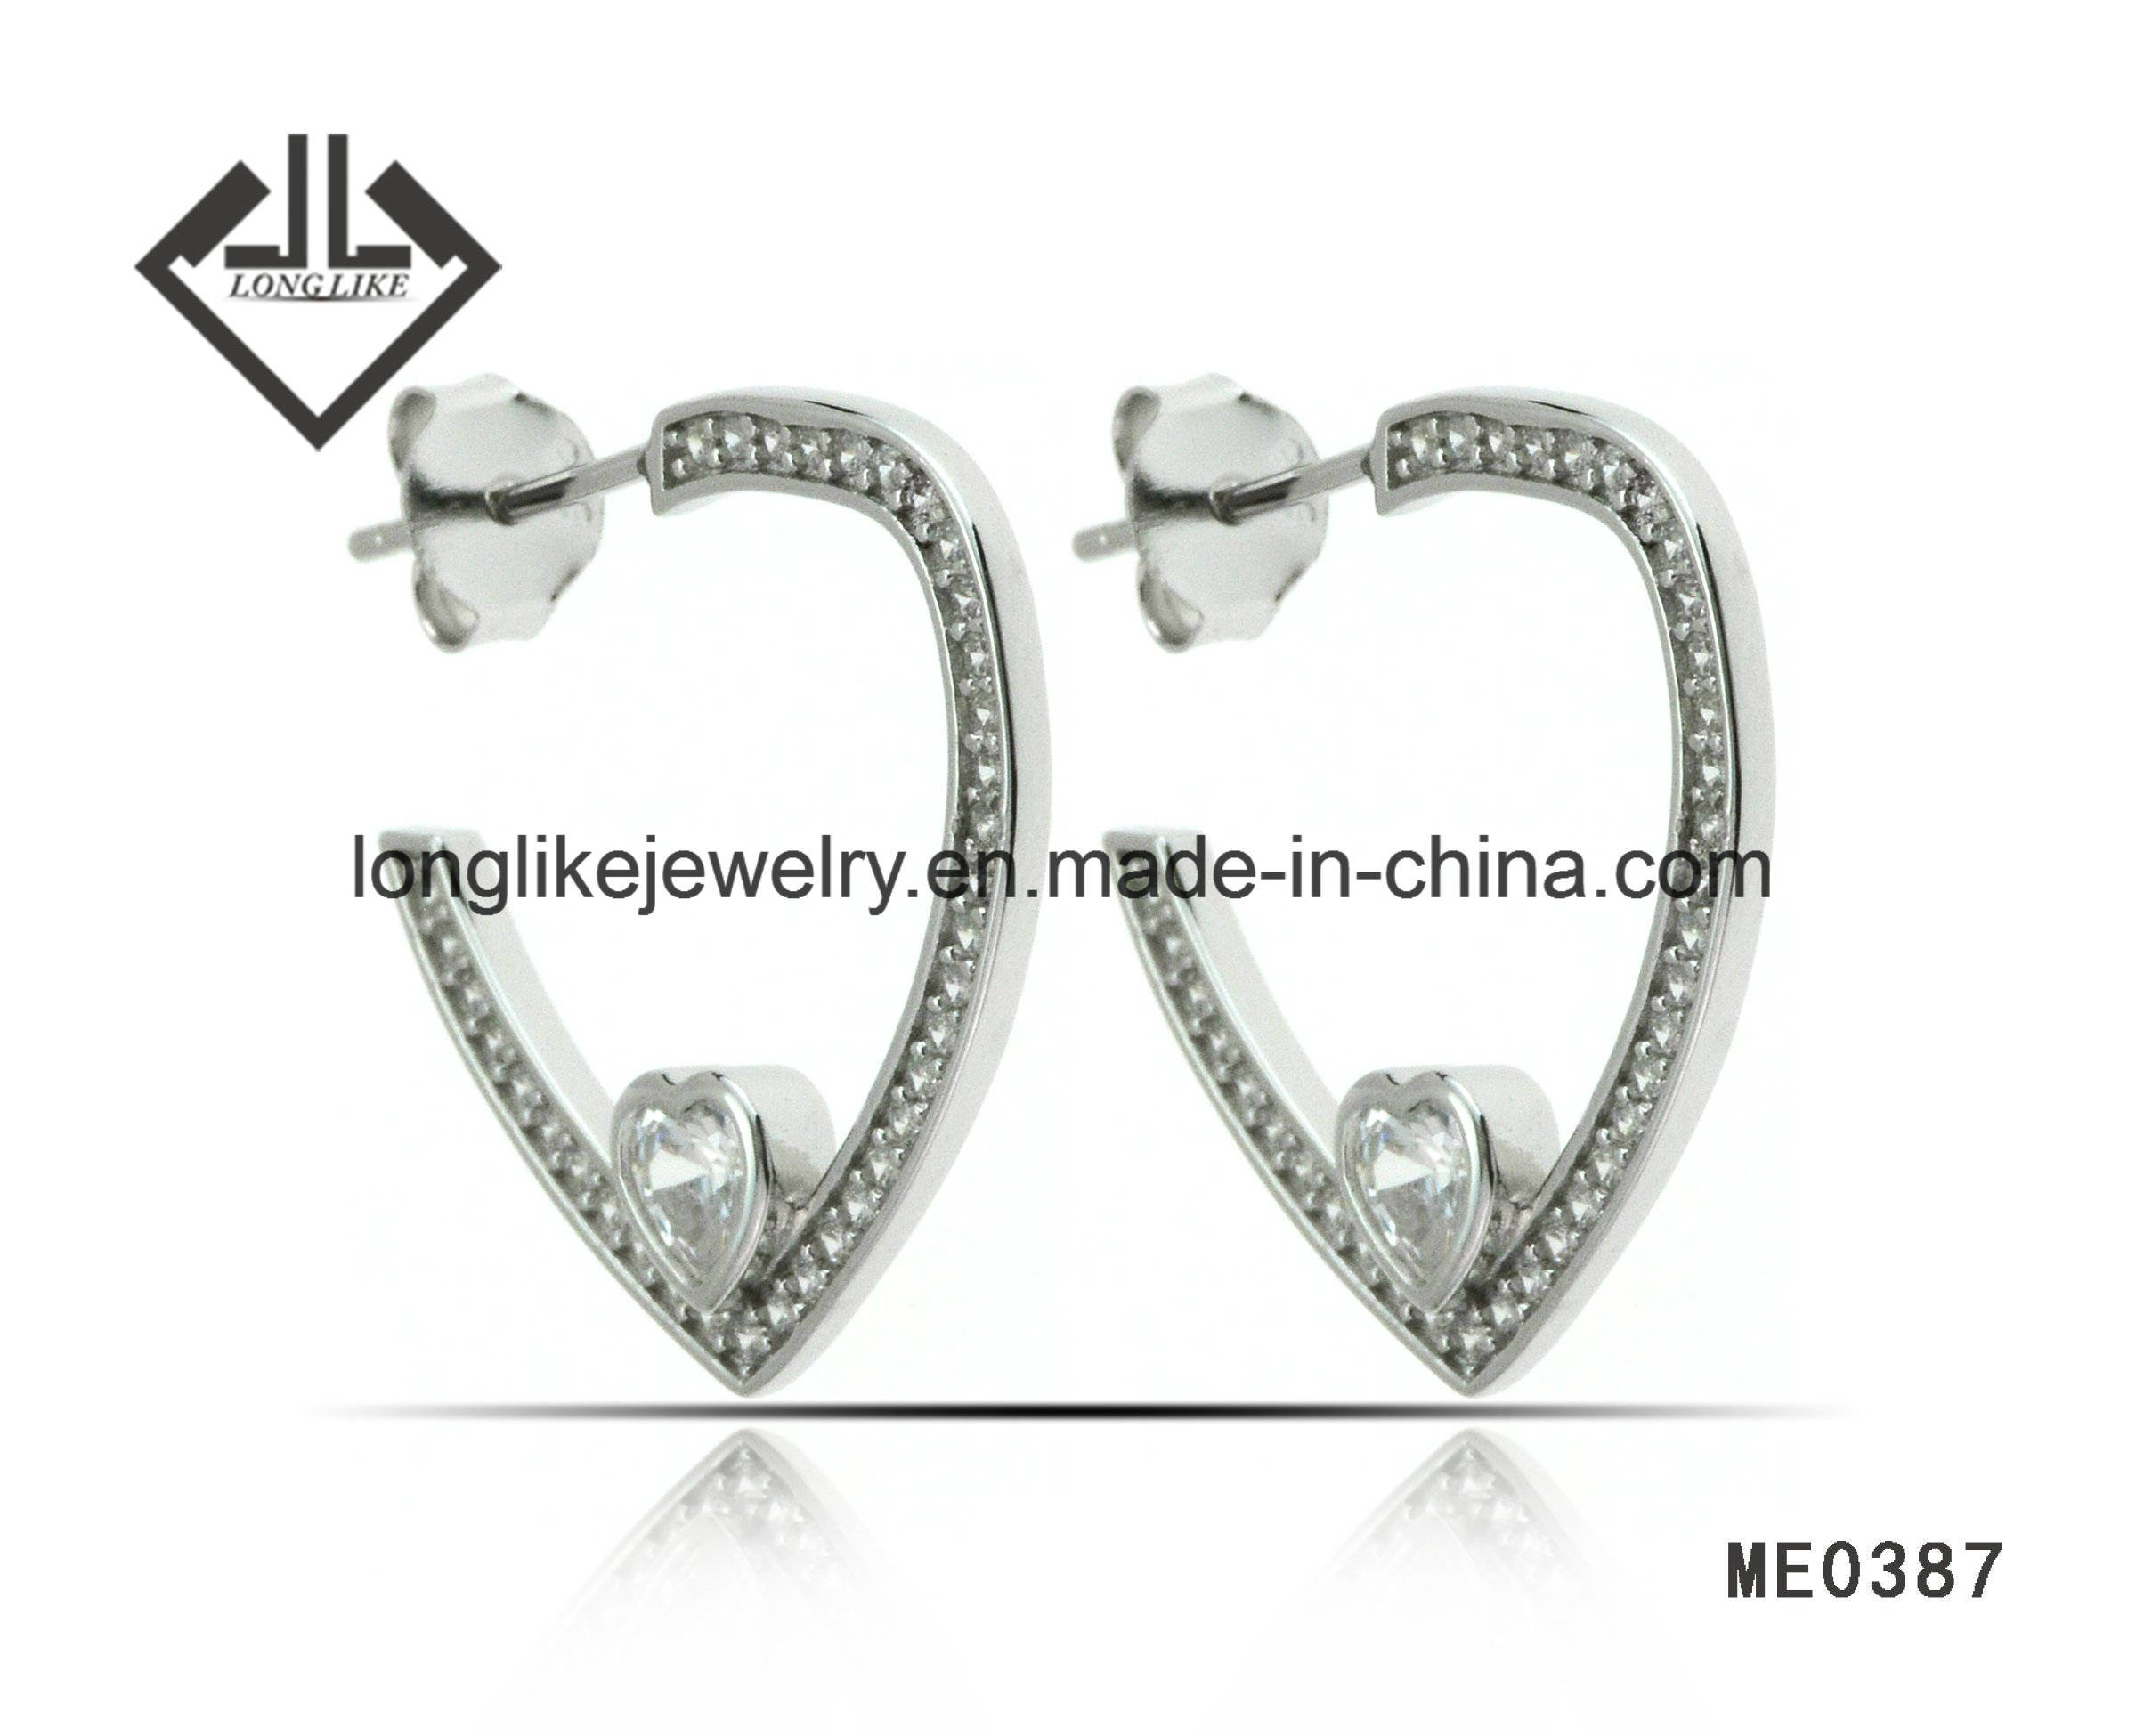 China Wholesale Silver Jewelry Fashion Earring Hoop